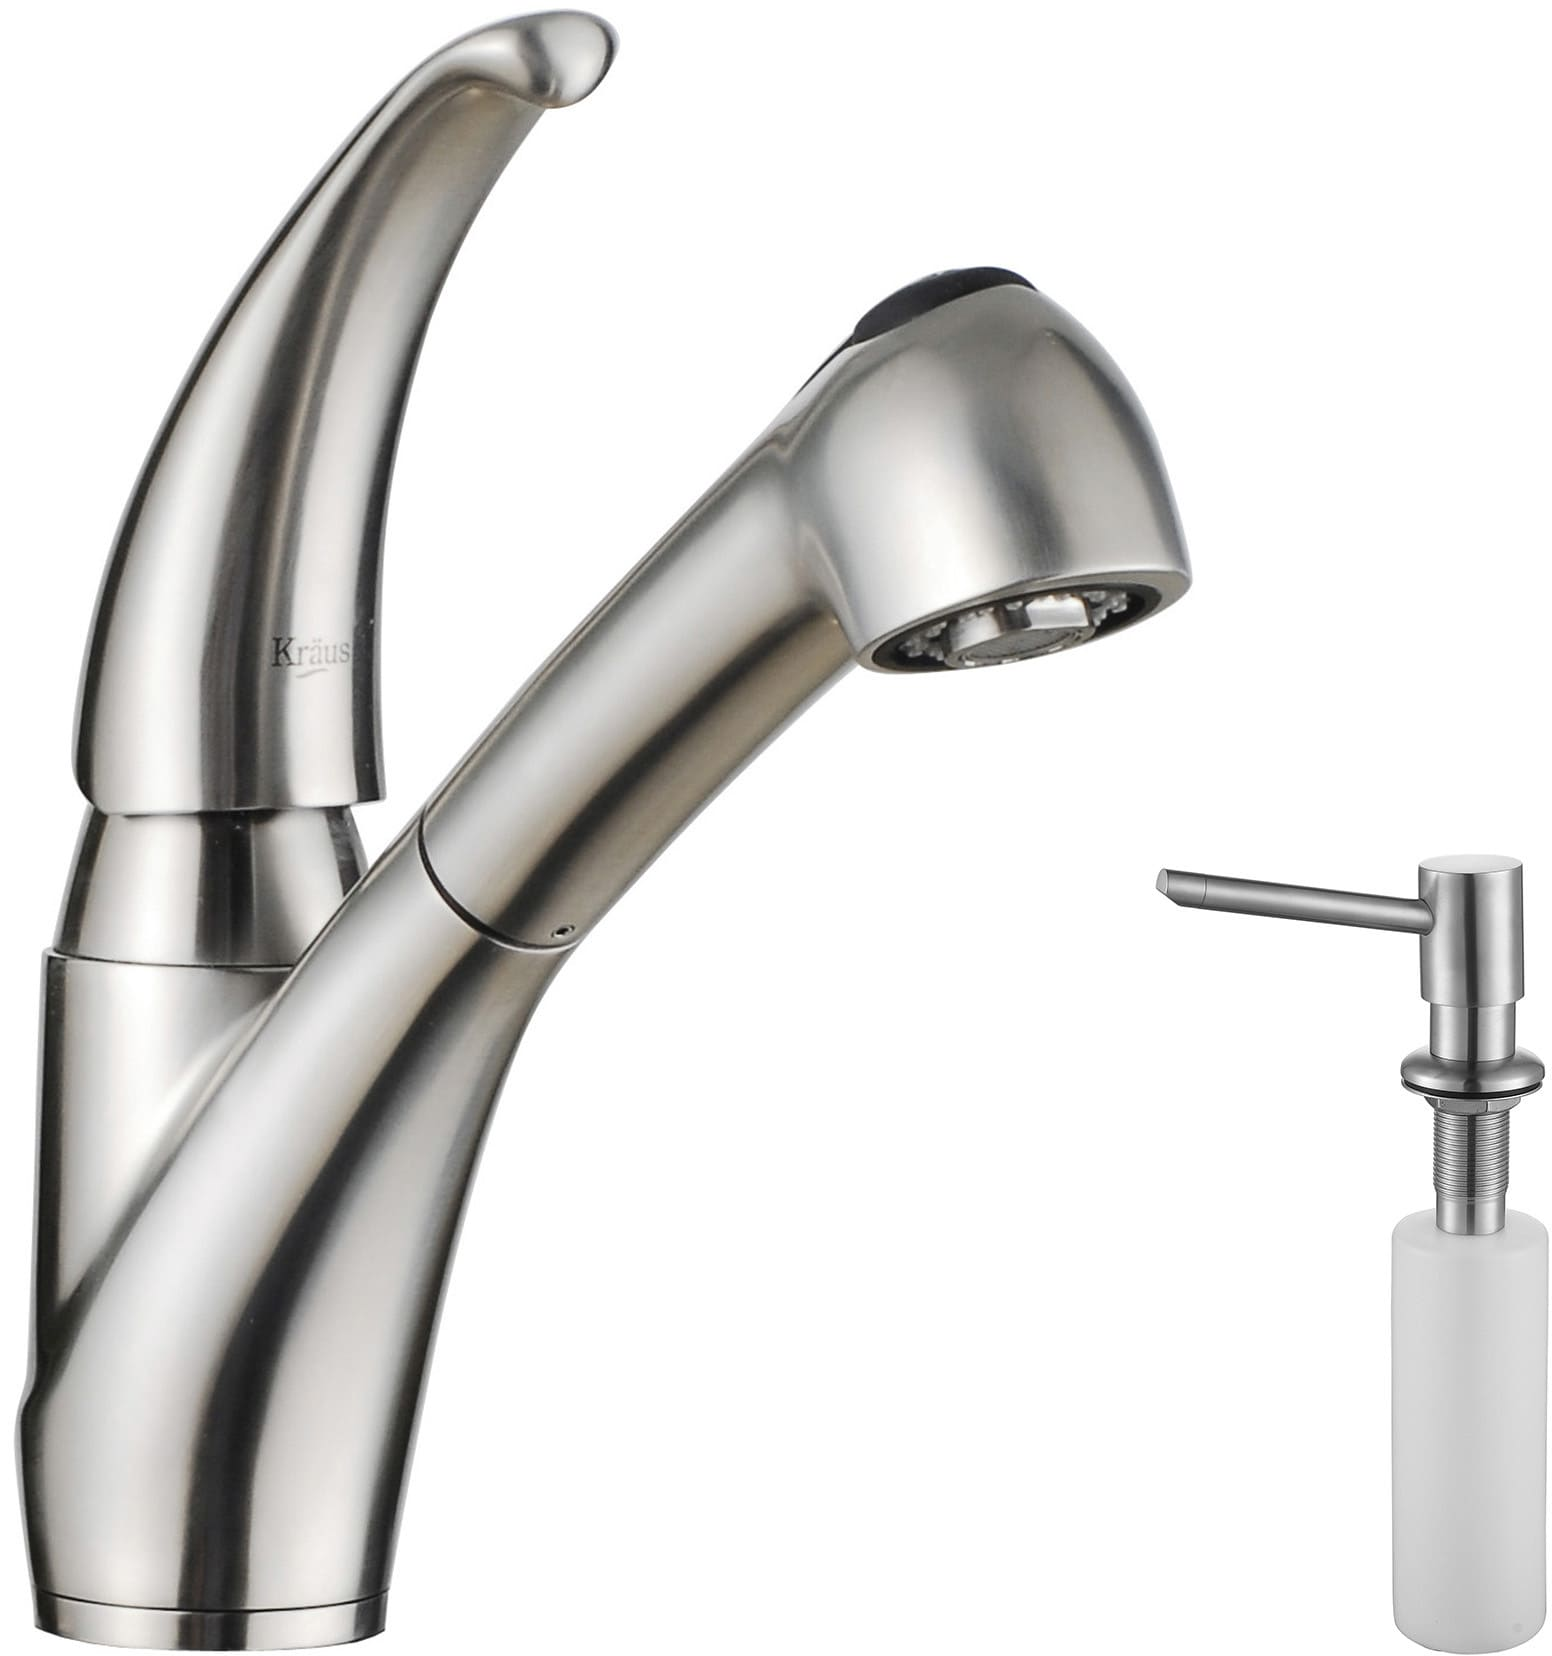 Kraus kpf2110sd20 single lever stainless steel pull out kitchen faucet with 360 degree swivel spout 28 inch hose length and ada compliant